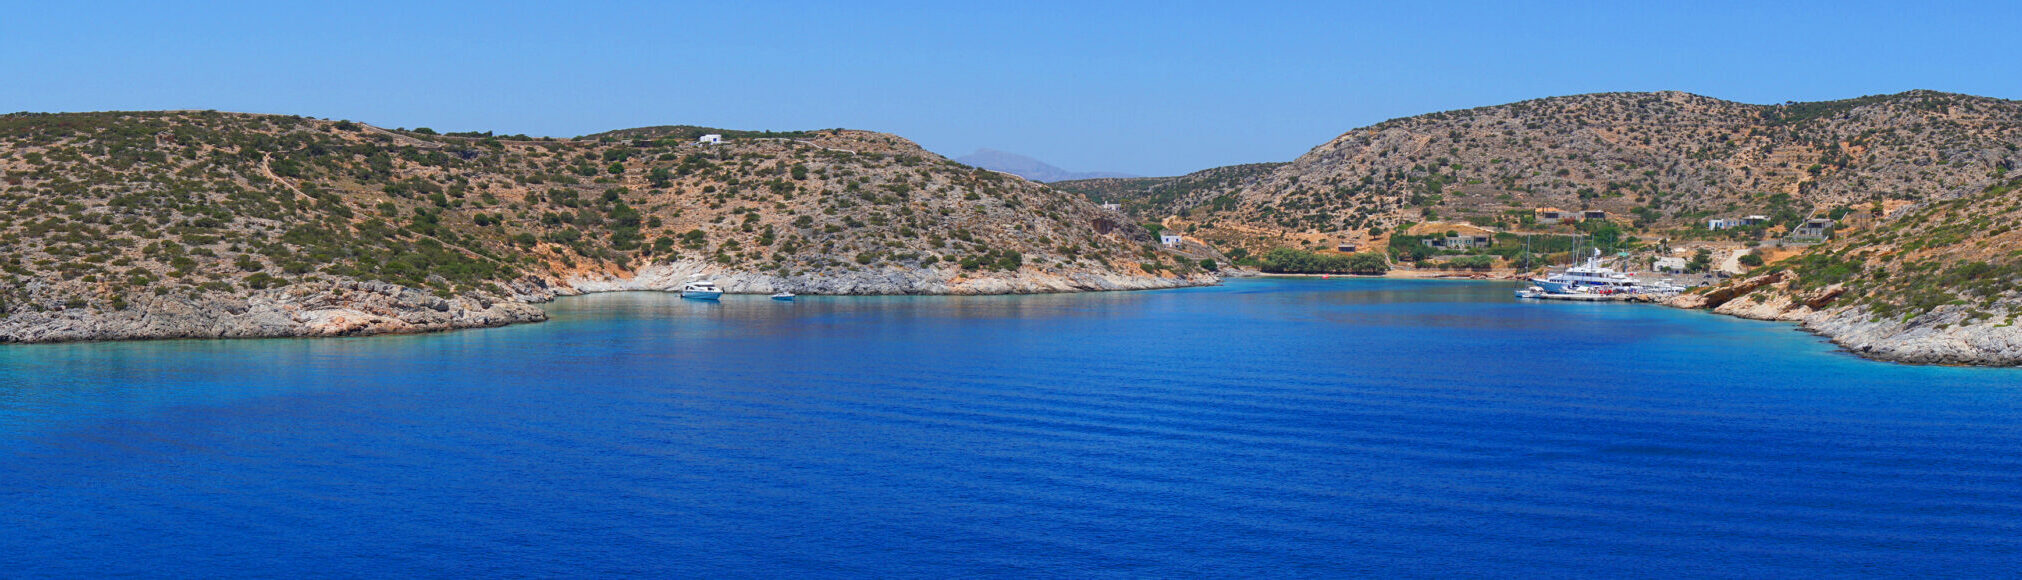 The Greek island of the Sun with its 18 beautiful beaches